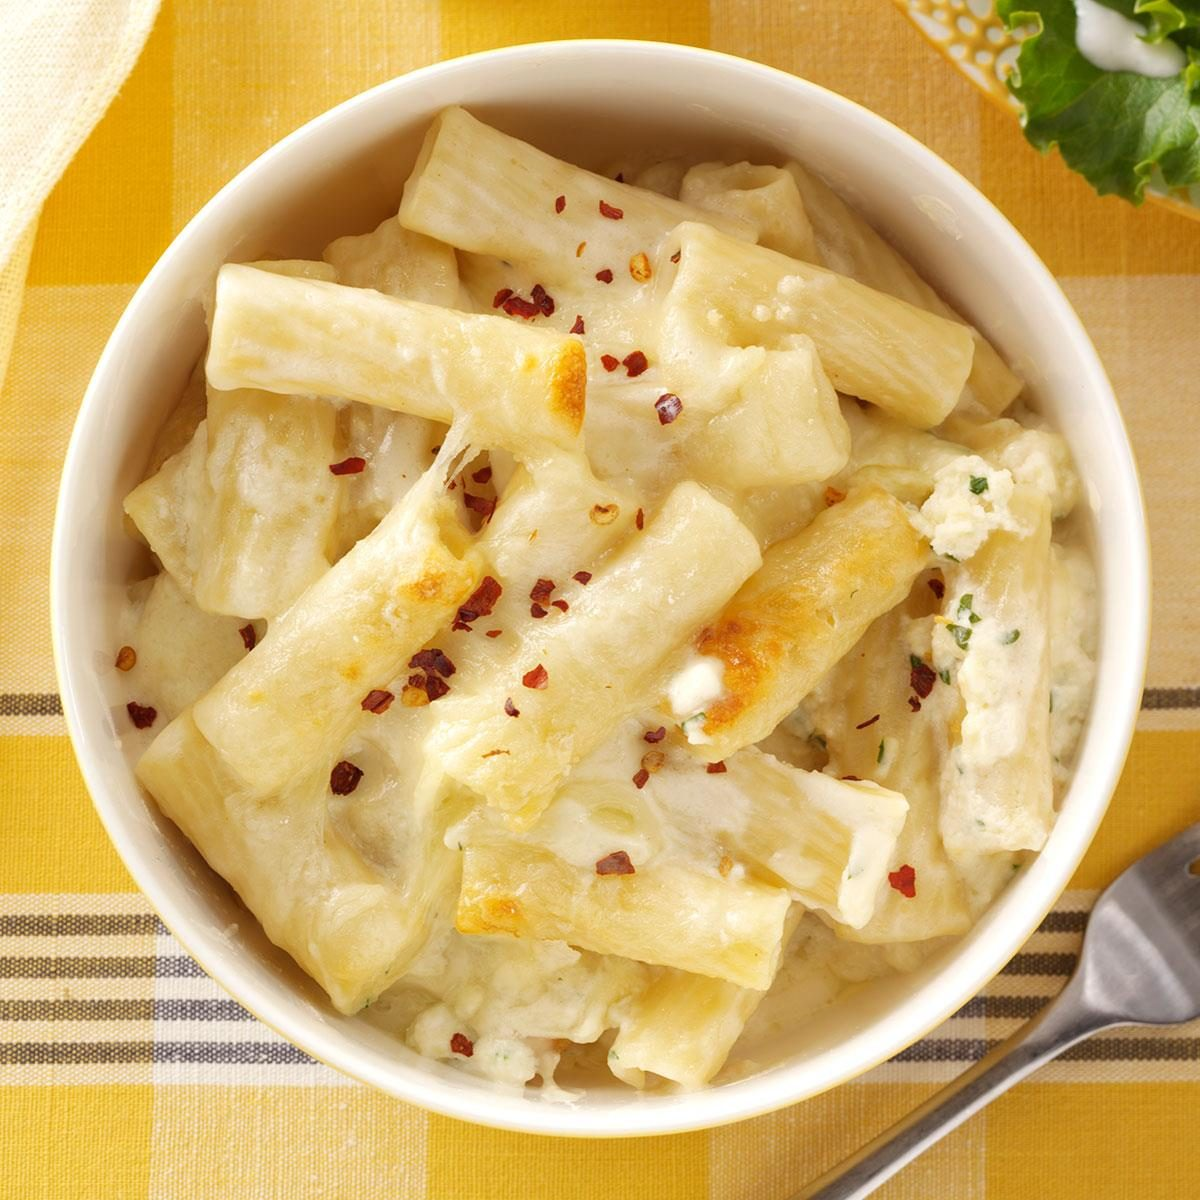 Baked Ziti With Cheese Recipe Taste Of Home